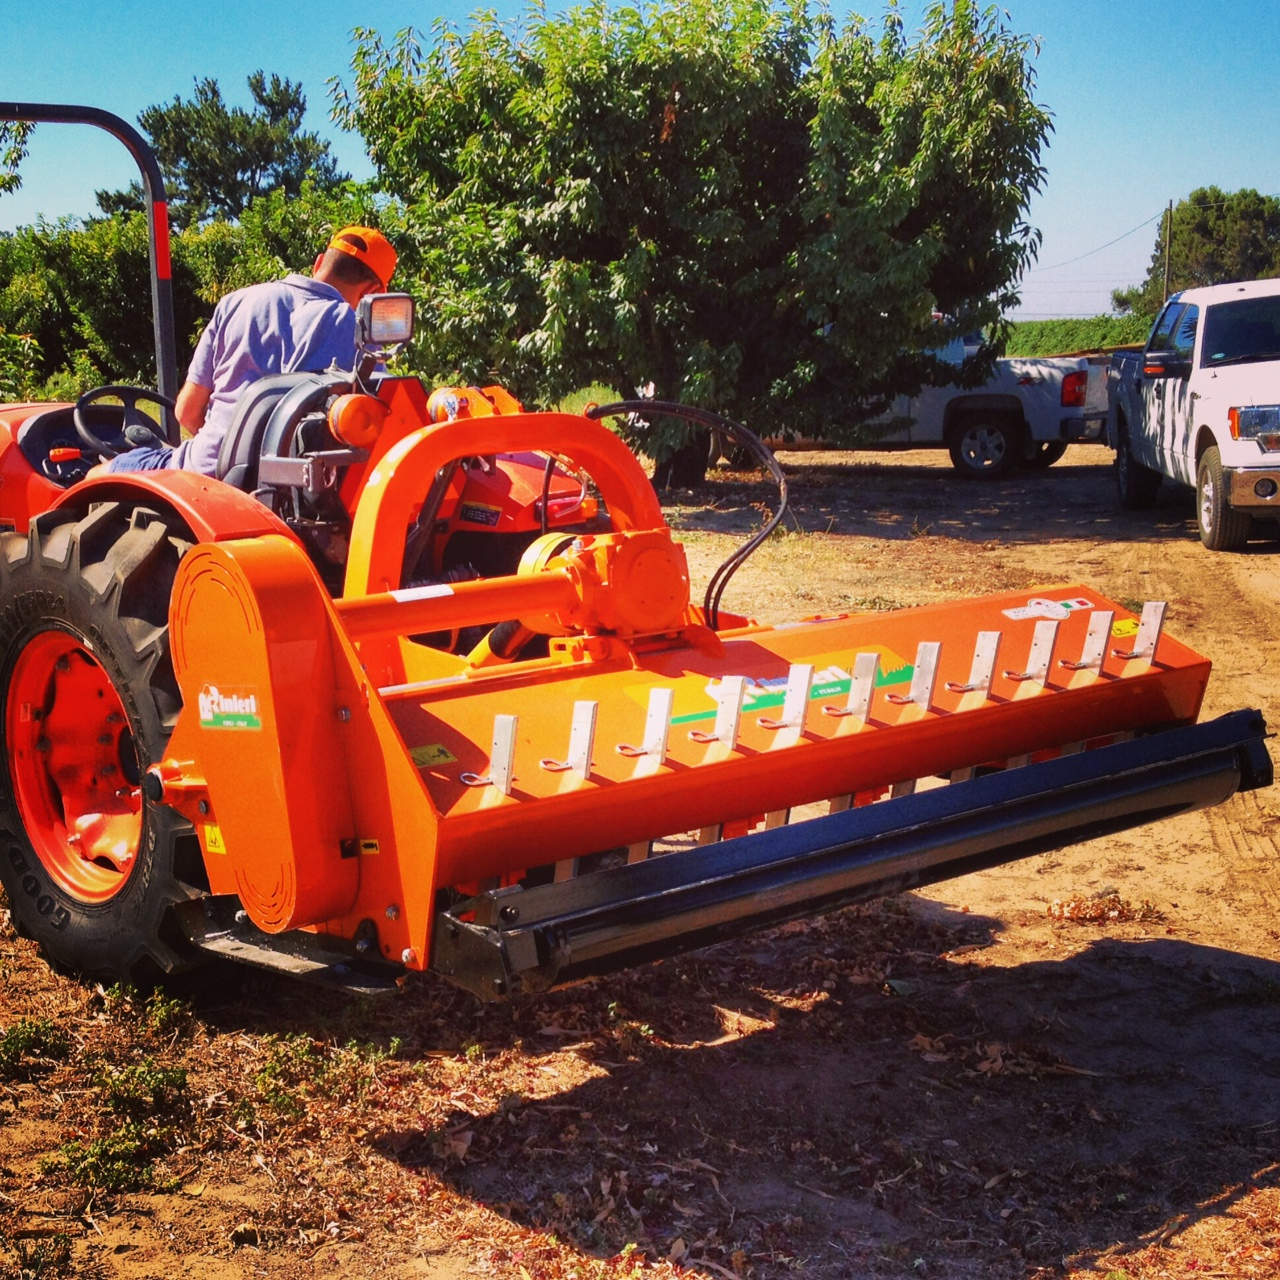 Vineyard Mowers - Saint Helena Agricultural Services